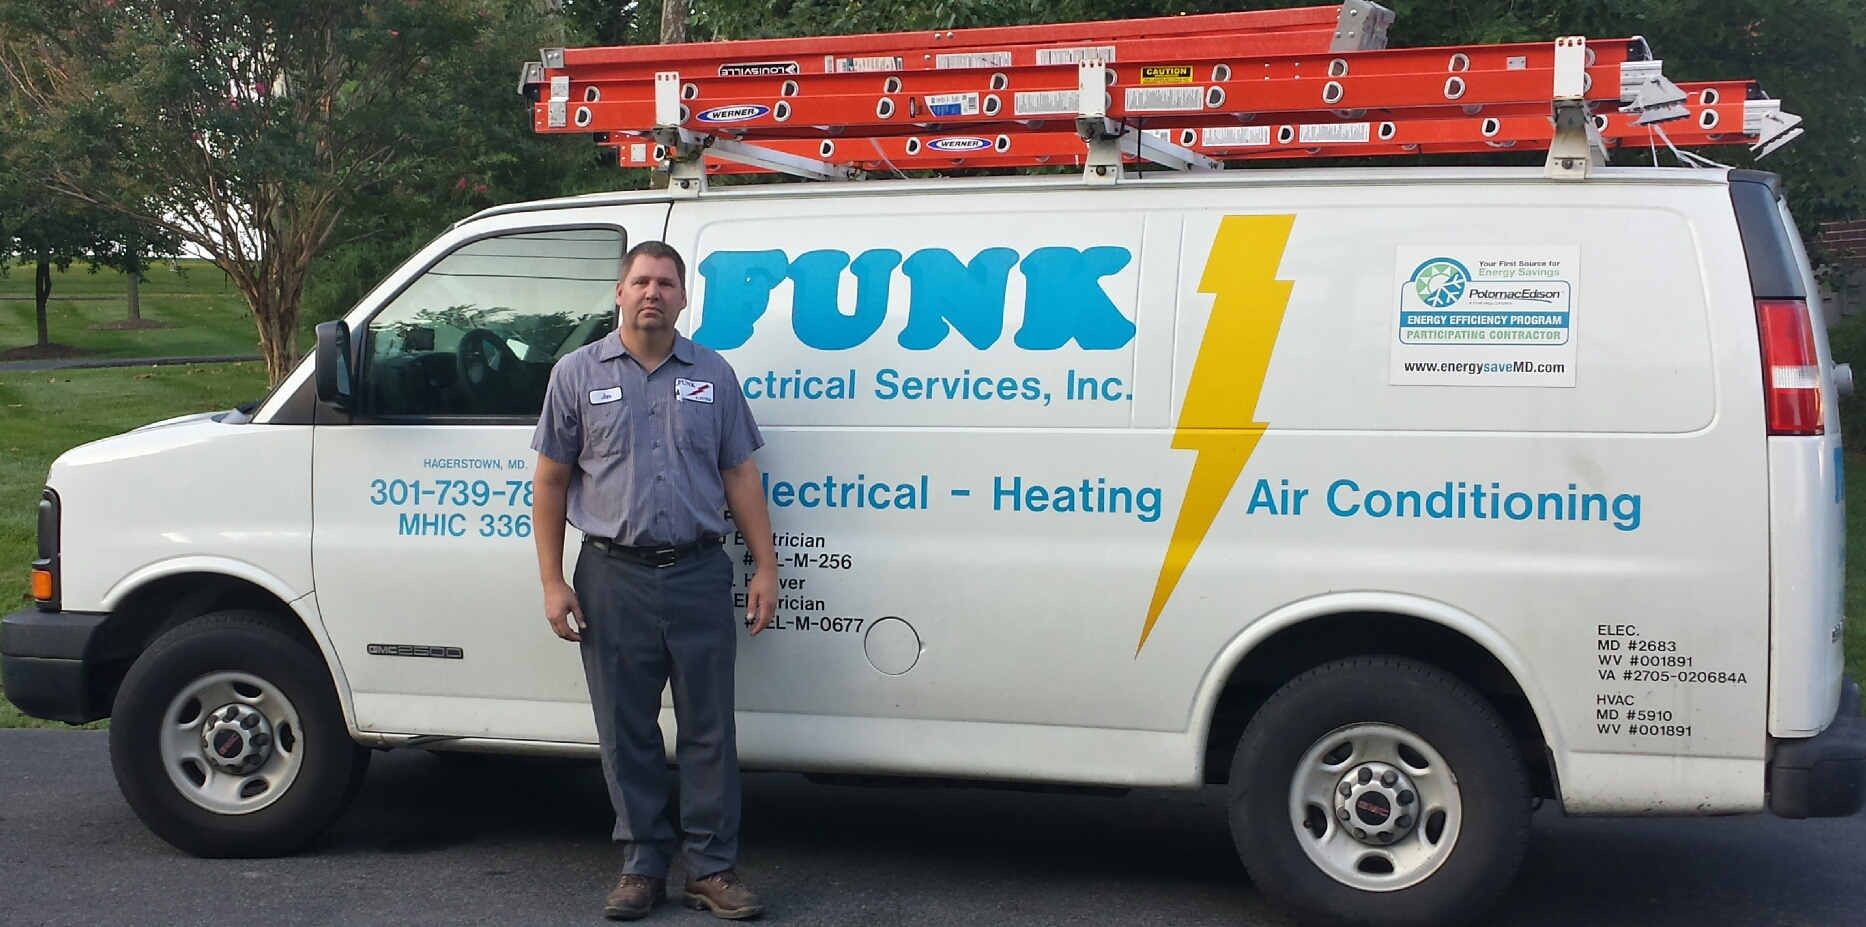 Funk Electrical Electrician And Hvac In Hagerstown Md